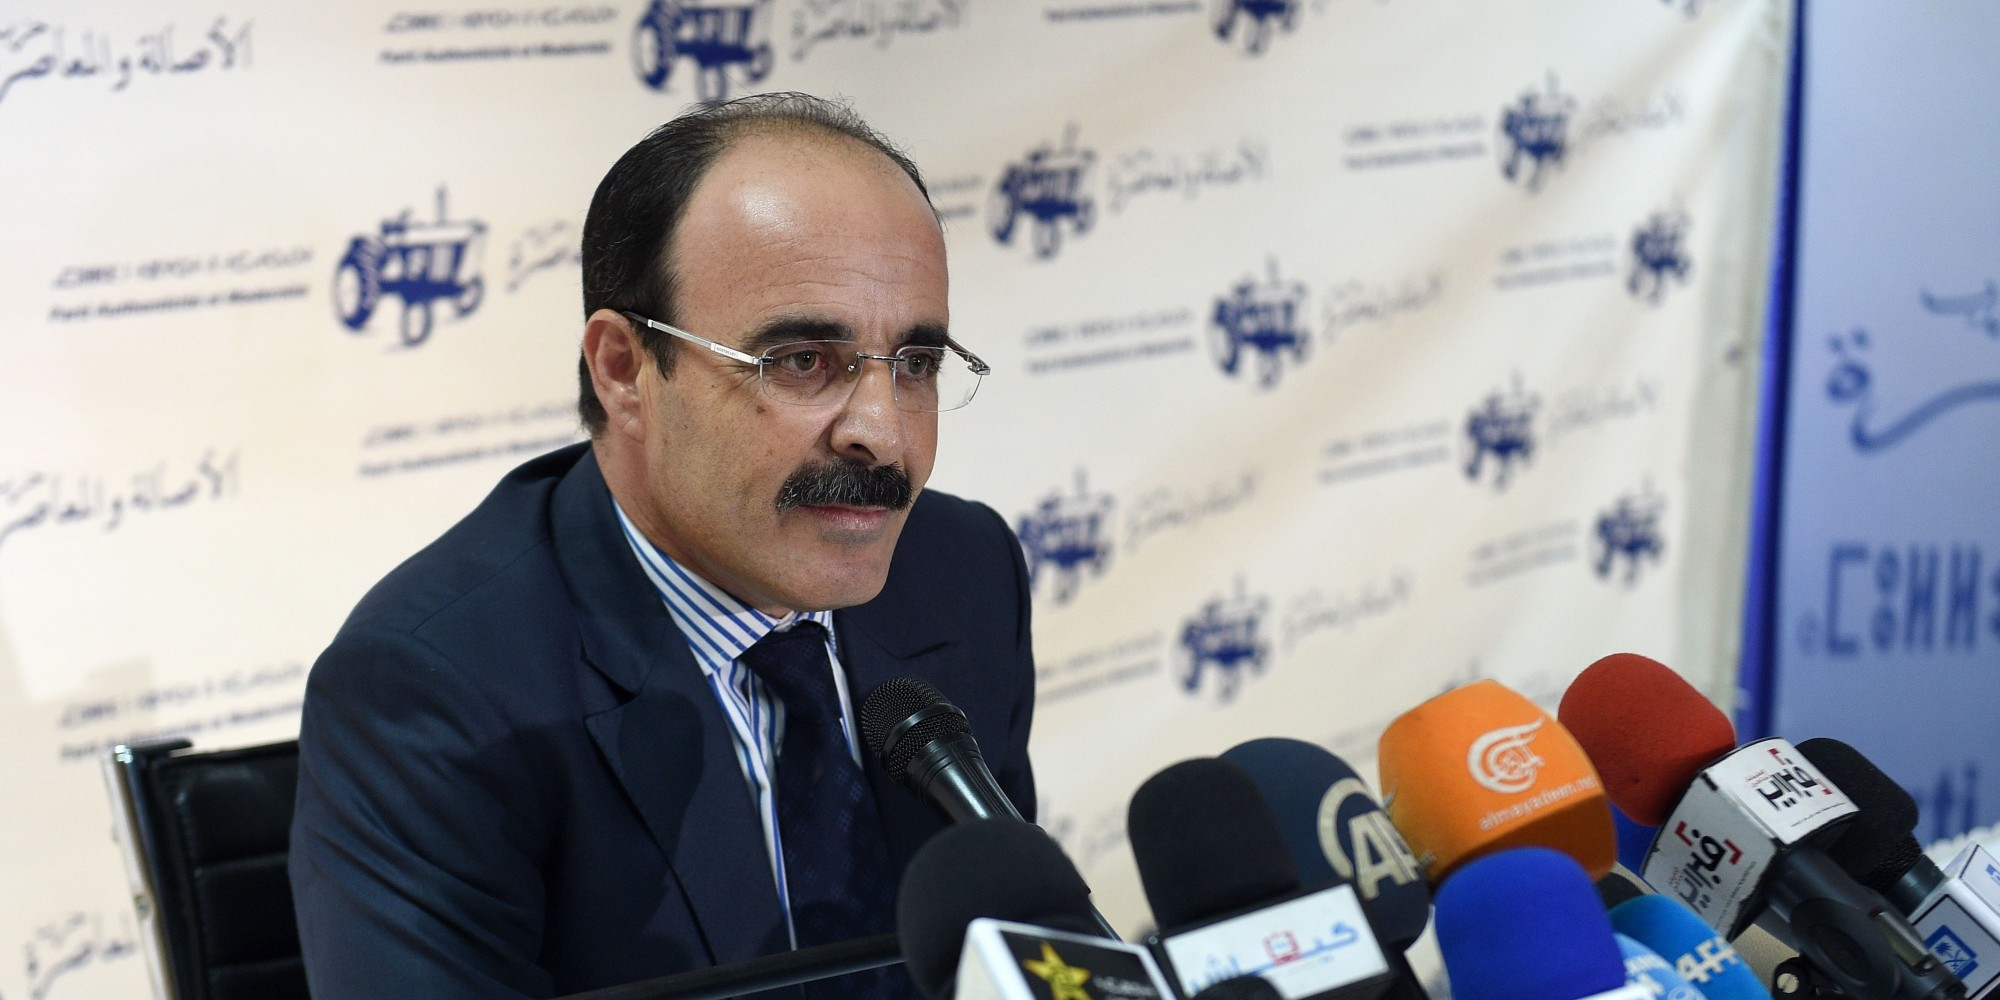 Ilyas el Omari, Vice Secretary General of the Party of Authenticity and Modernity (PAM) speaks during a press conference following the results from Moroccan municipal and regional elections on September 5, 2015 in Rabat. Morocco's Islamists came first in regional elections seen as a test of their popularity after nearly four years in power, but trailed the liberal opposition in municipal polls, results showed. The PAM, a liberal opposition party founded by a politician close to the king, came second with 19.4 percent.      AFP PHOTO / FADEL SENNA        (Photo credit should read FADEL SENNA/AFP/Getty Images)